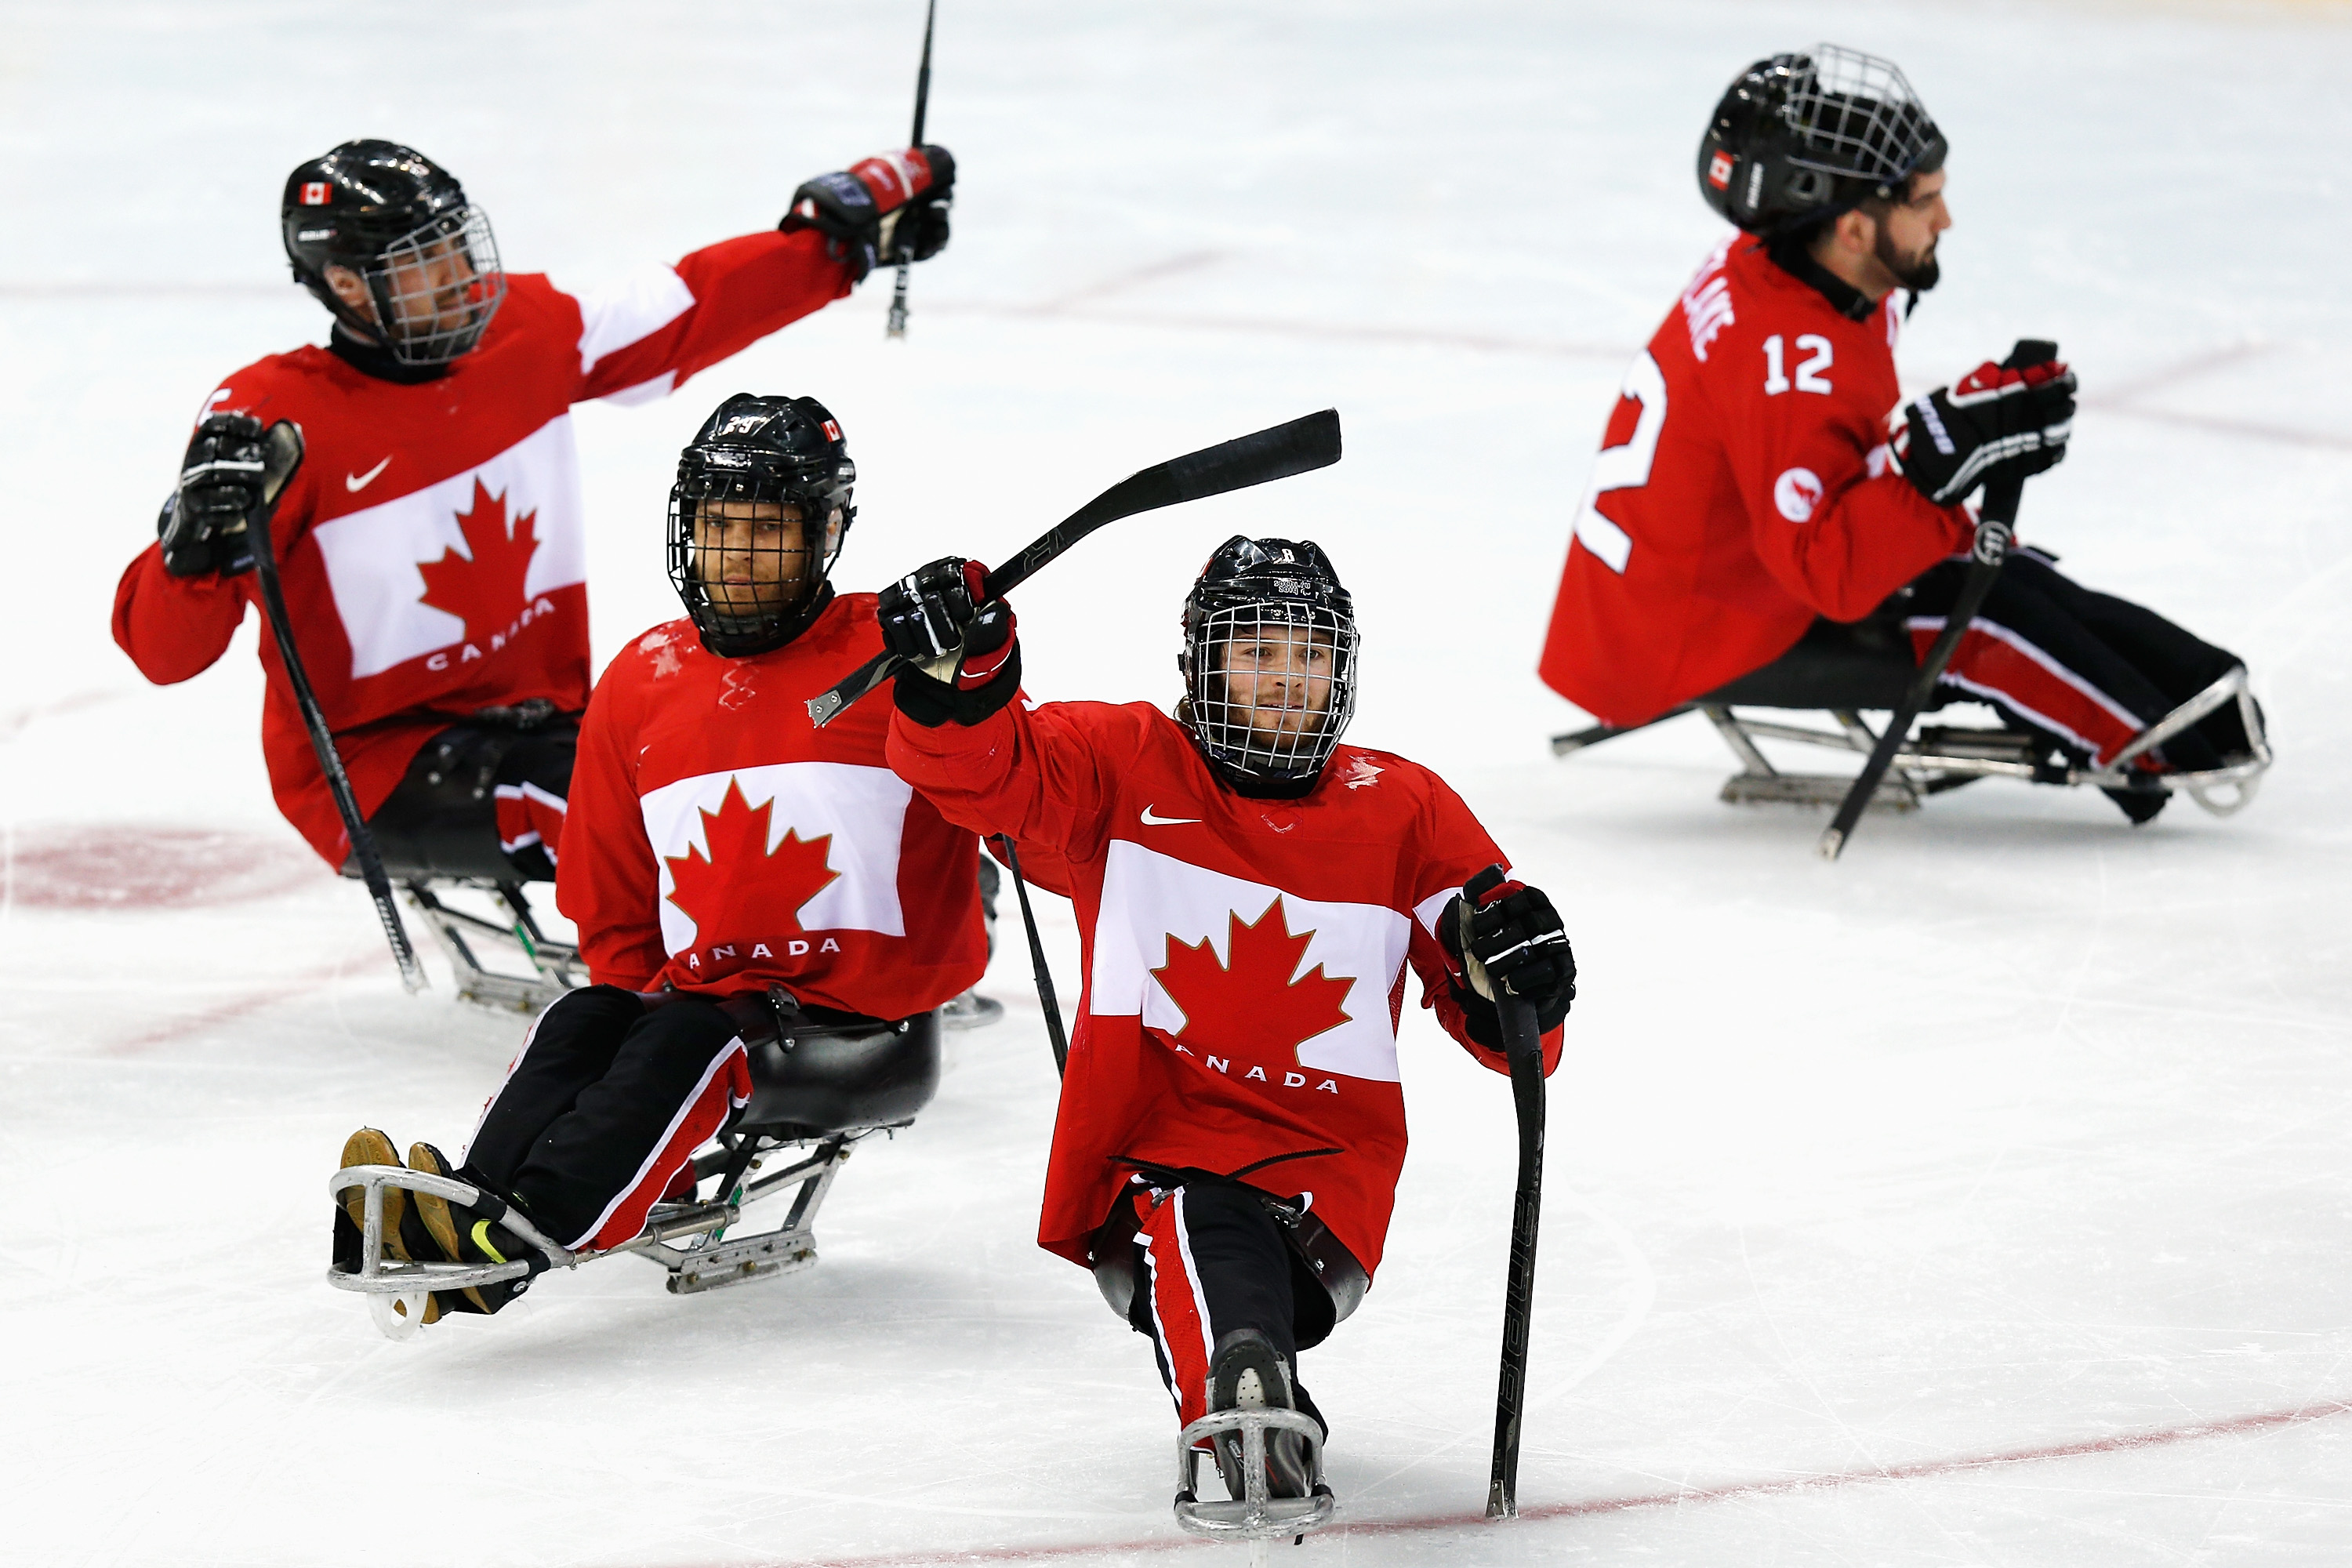 PyeongChang 2018: Canada name Para ice hockey team | International ...